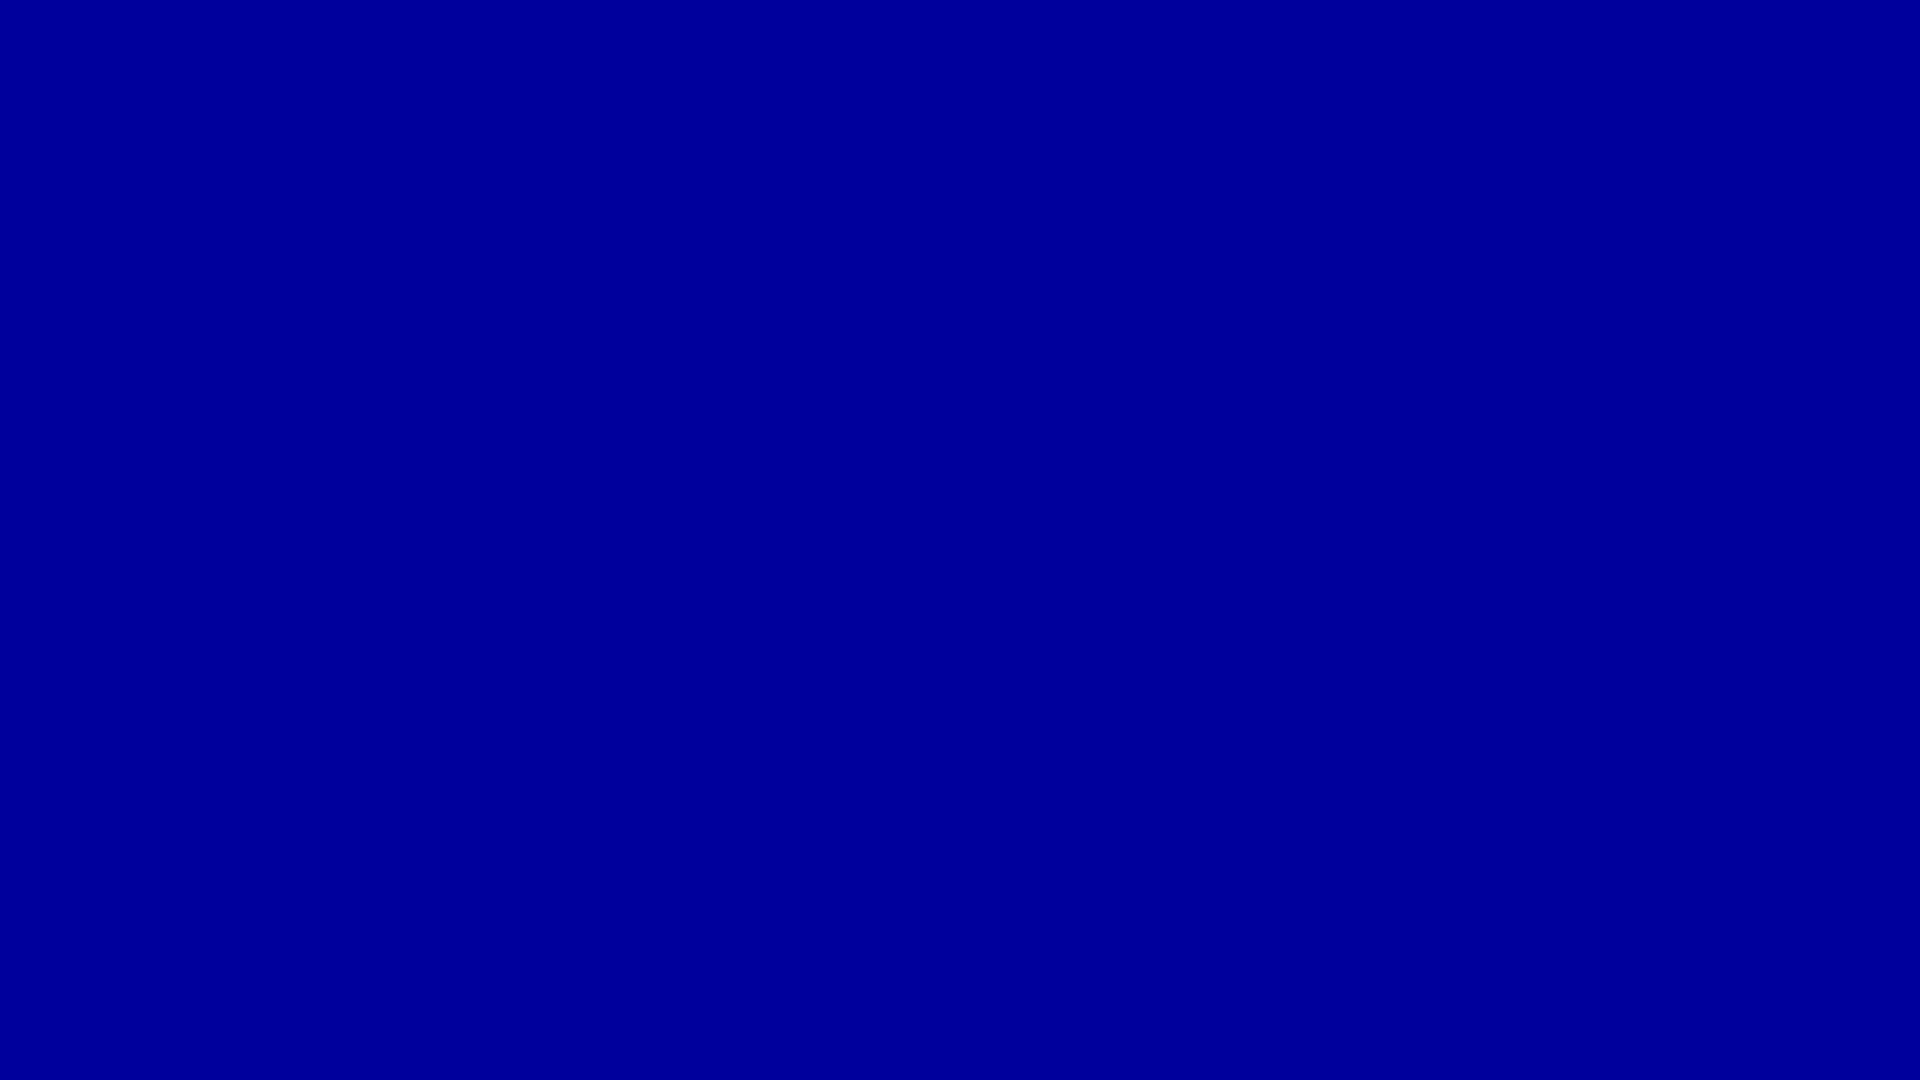 1920x1080 Duke Blue Solid Color Background 1920x1080